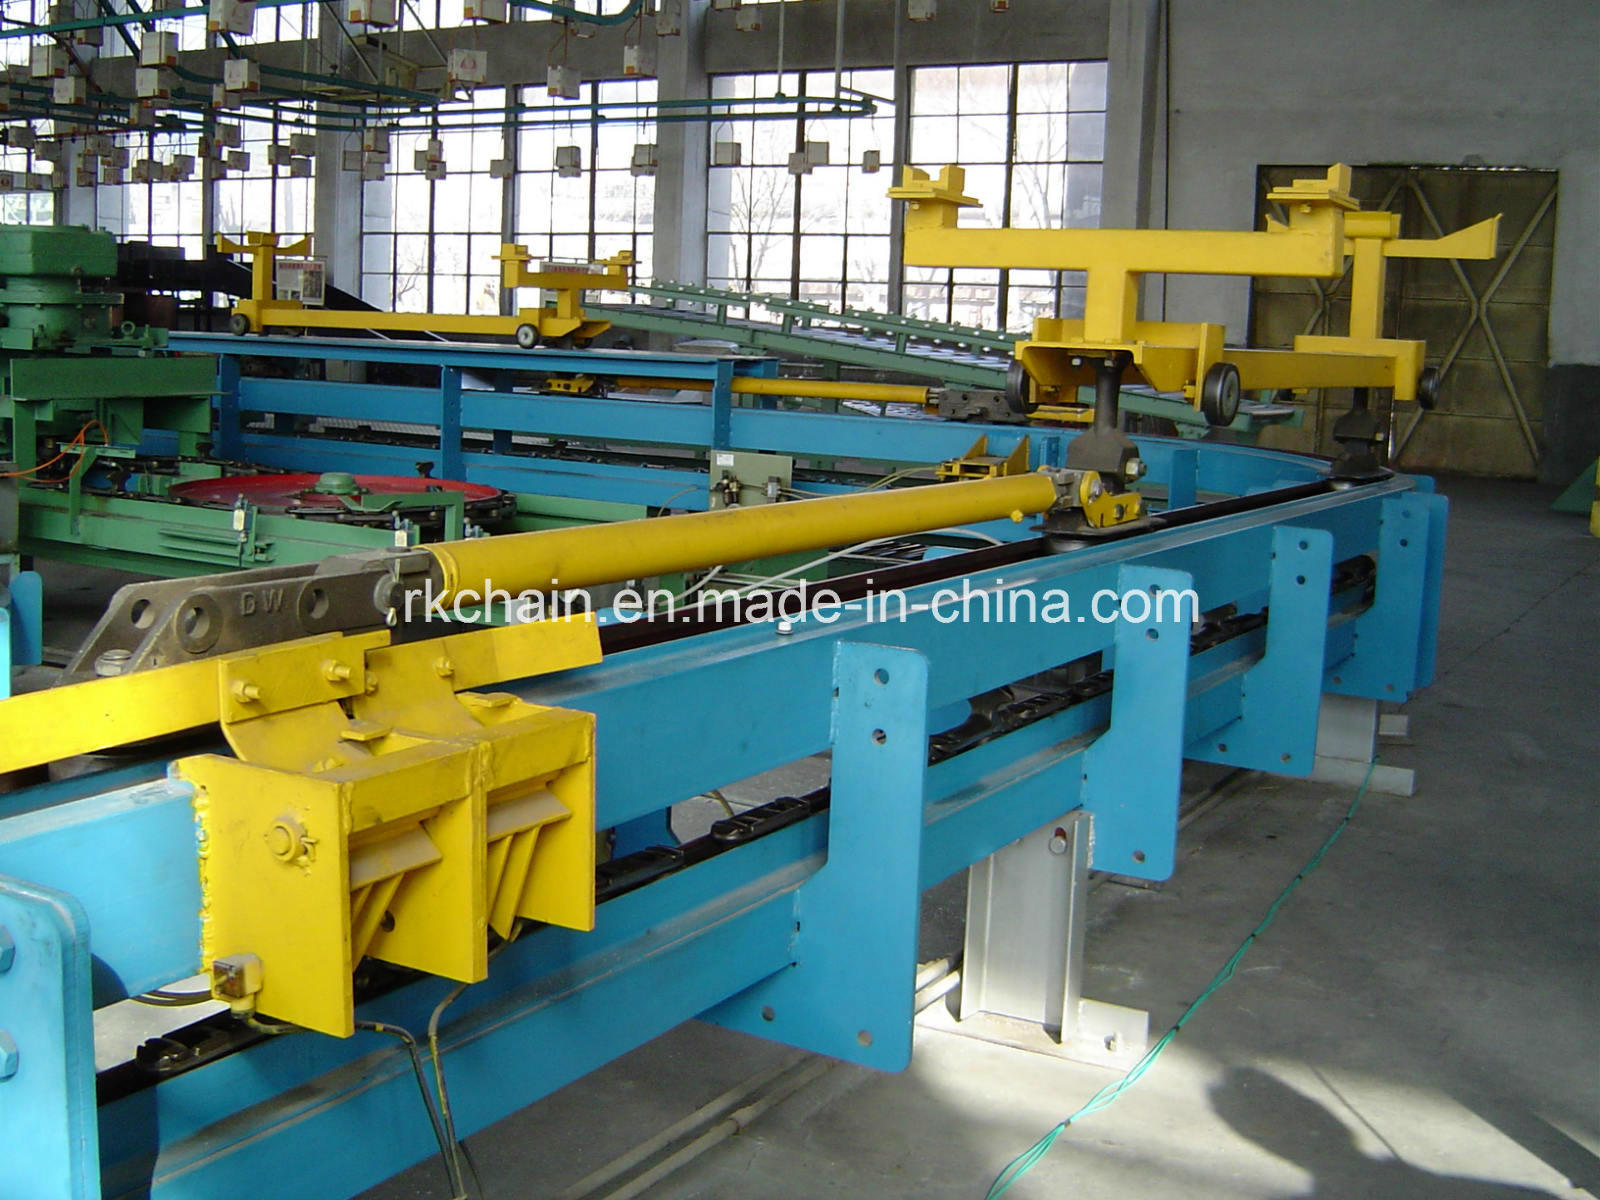 "(3""4""6"") Chain Conveyor for Overhead Conveyor System pictures & photos"